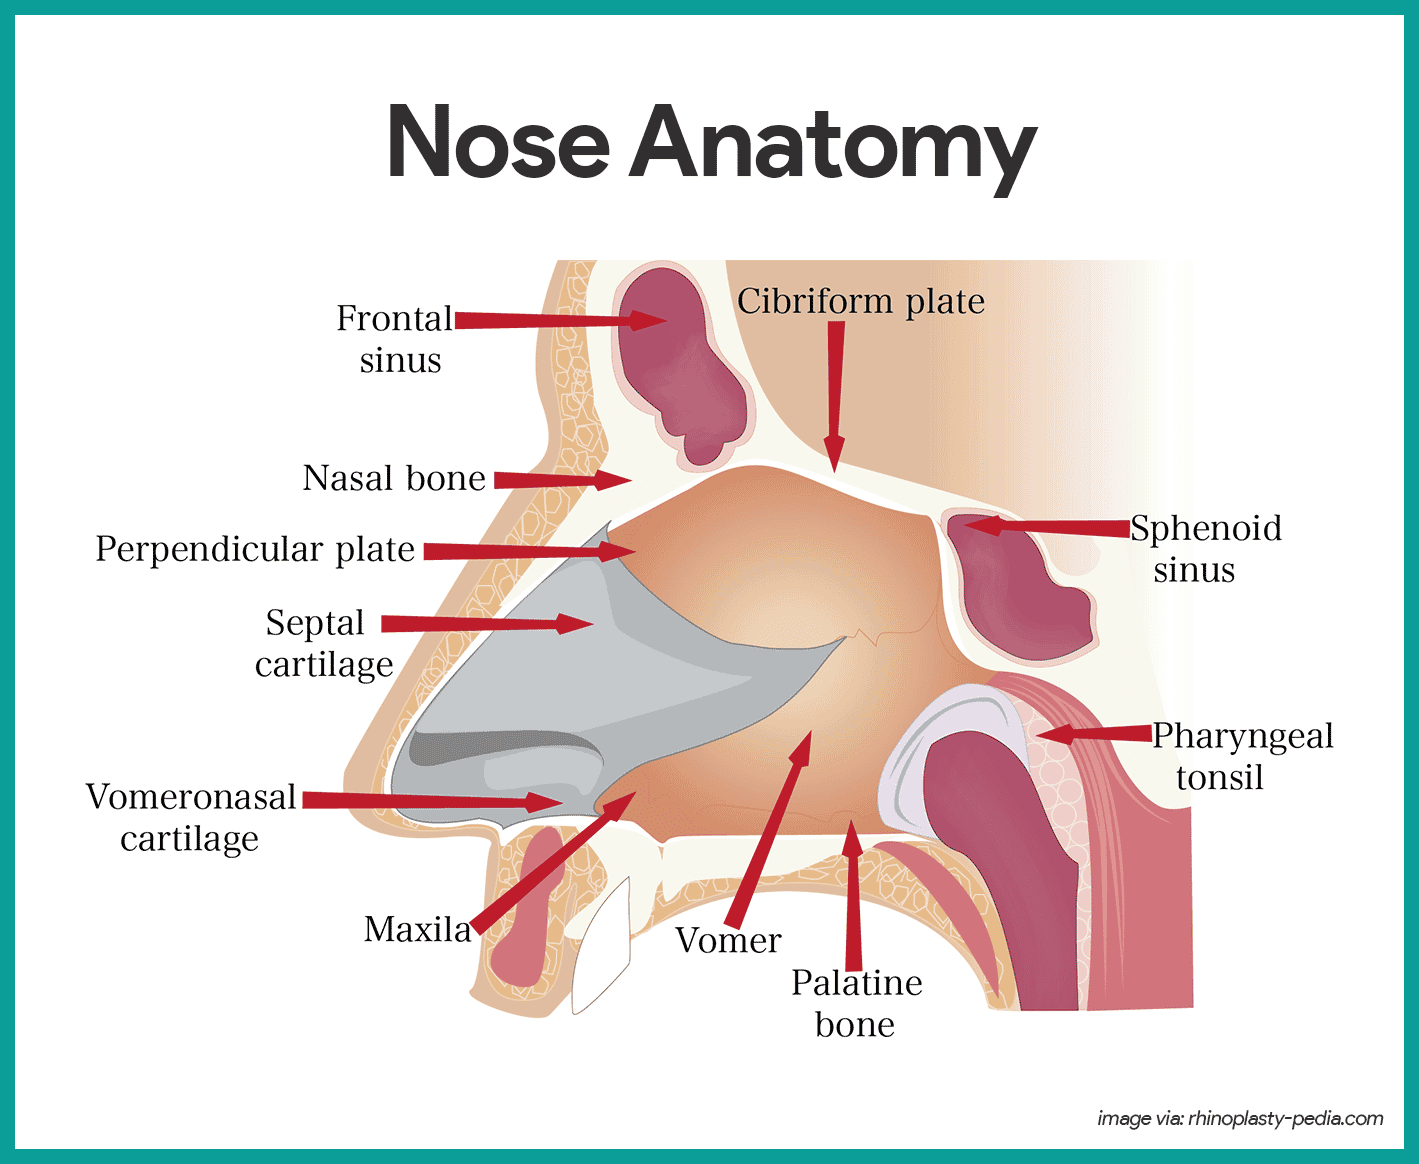 Nose Anatomy-Respiratory System Anatomy and Physiology